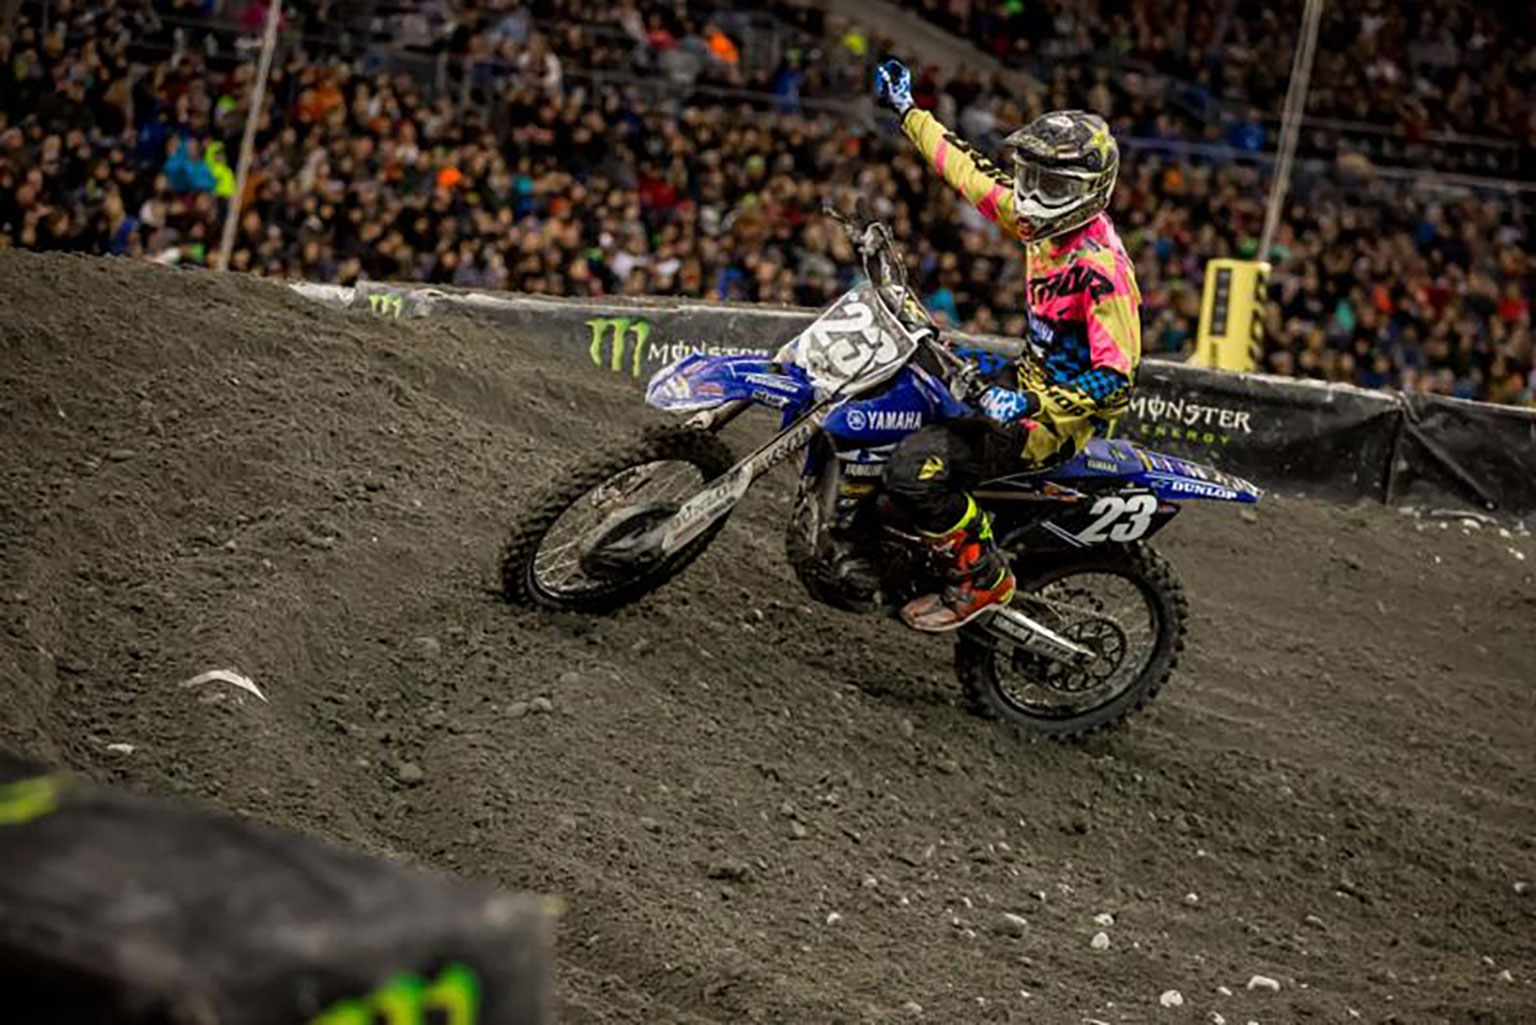 Plessinger took the 250 glory